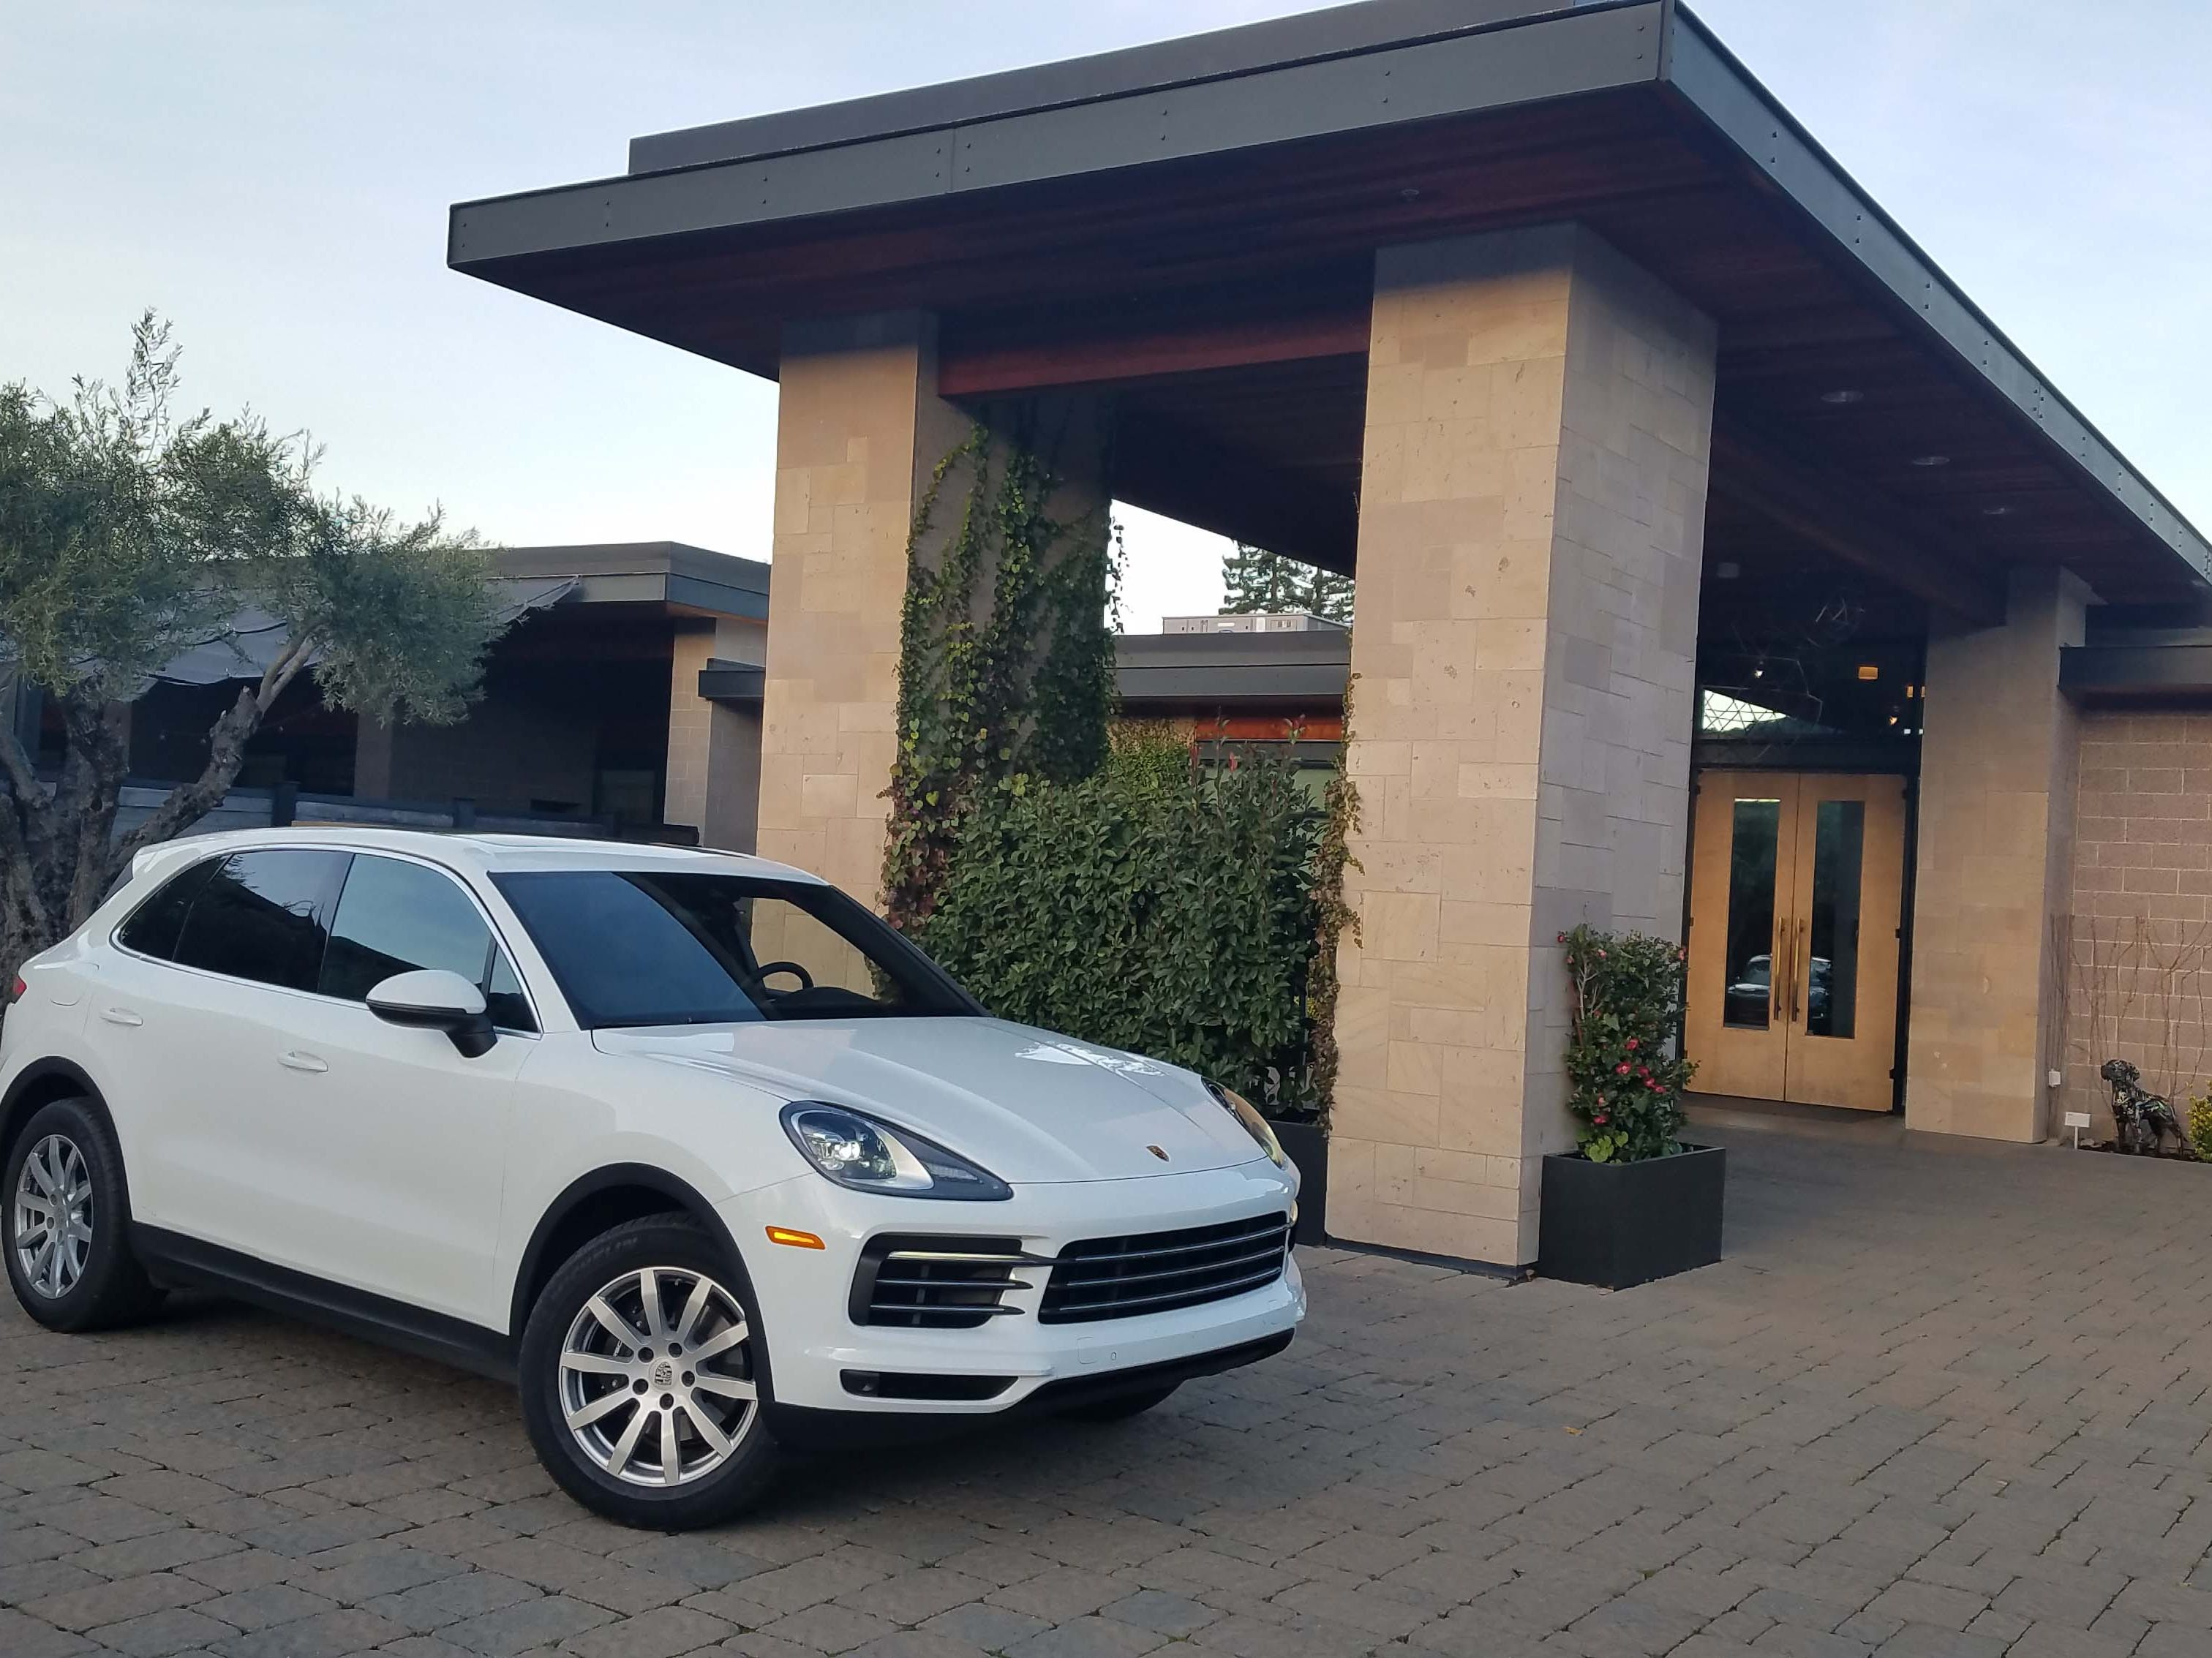 The first sports car maker to debut a performance SUV, Porsche's Cayenne looks sharp rolling up to a ritzy hotel — and seats the family unlike the smaller, 2+2 Porsche 911.